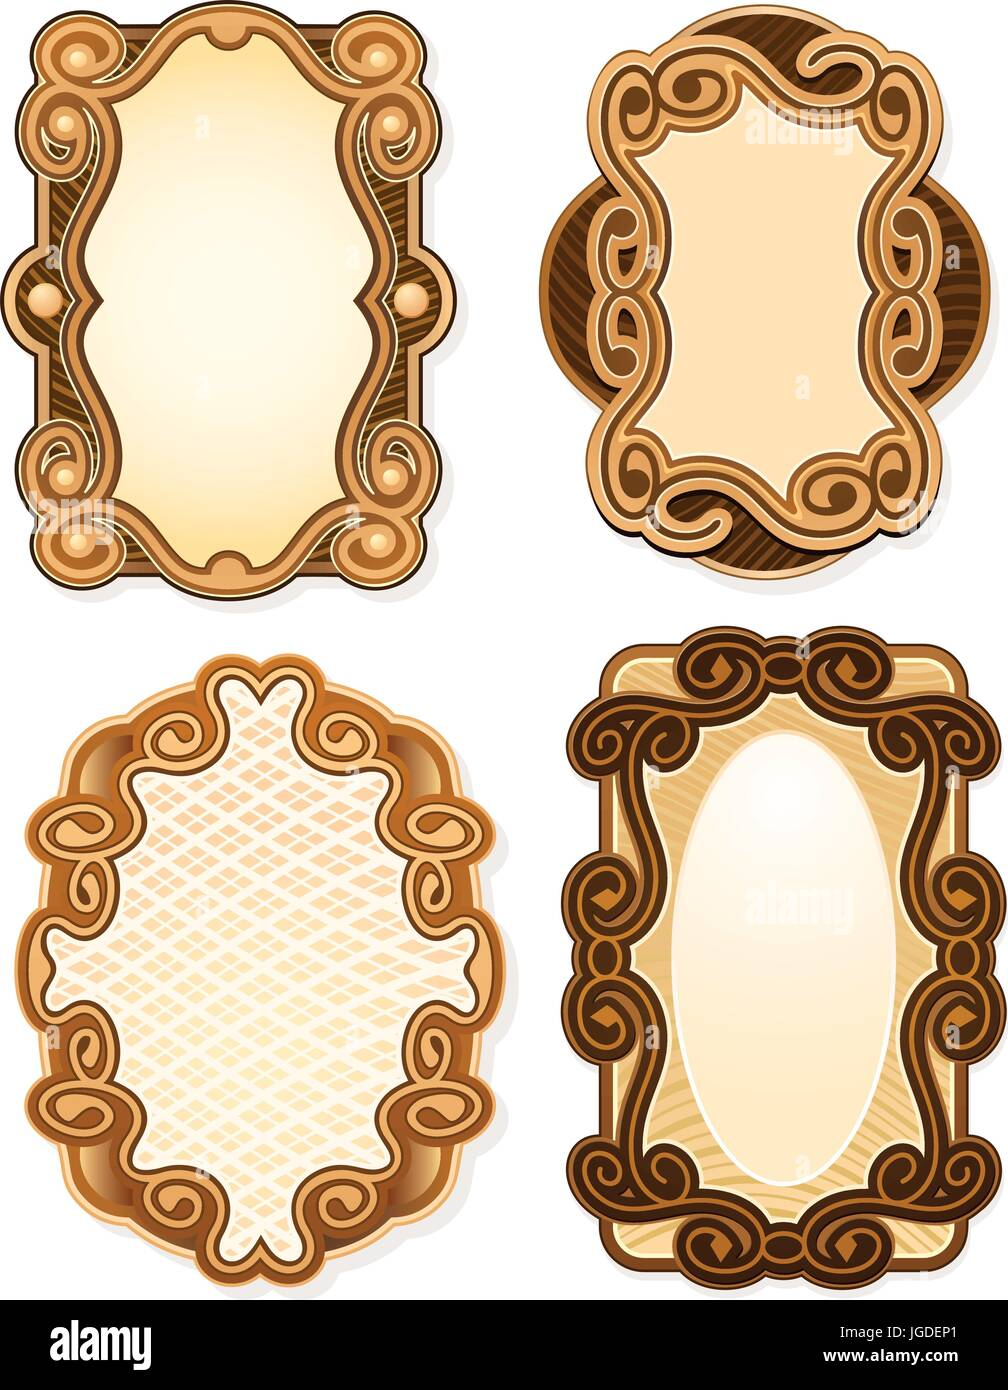 Miniature ornate borders for labels - Stock Vector